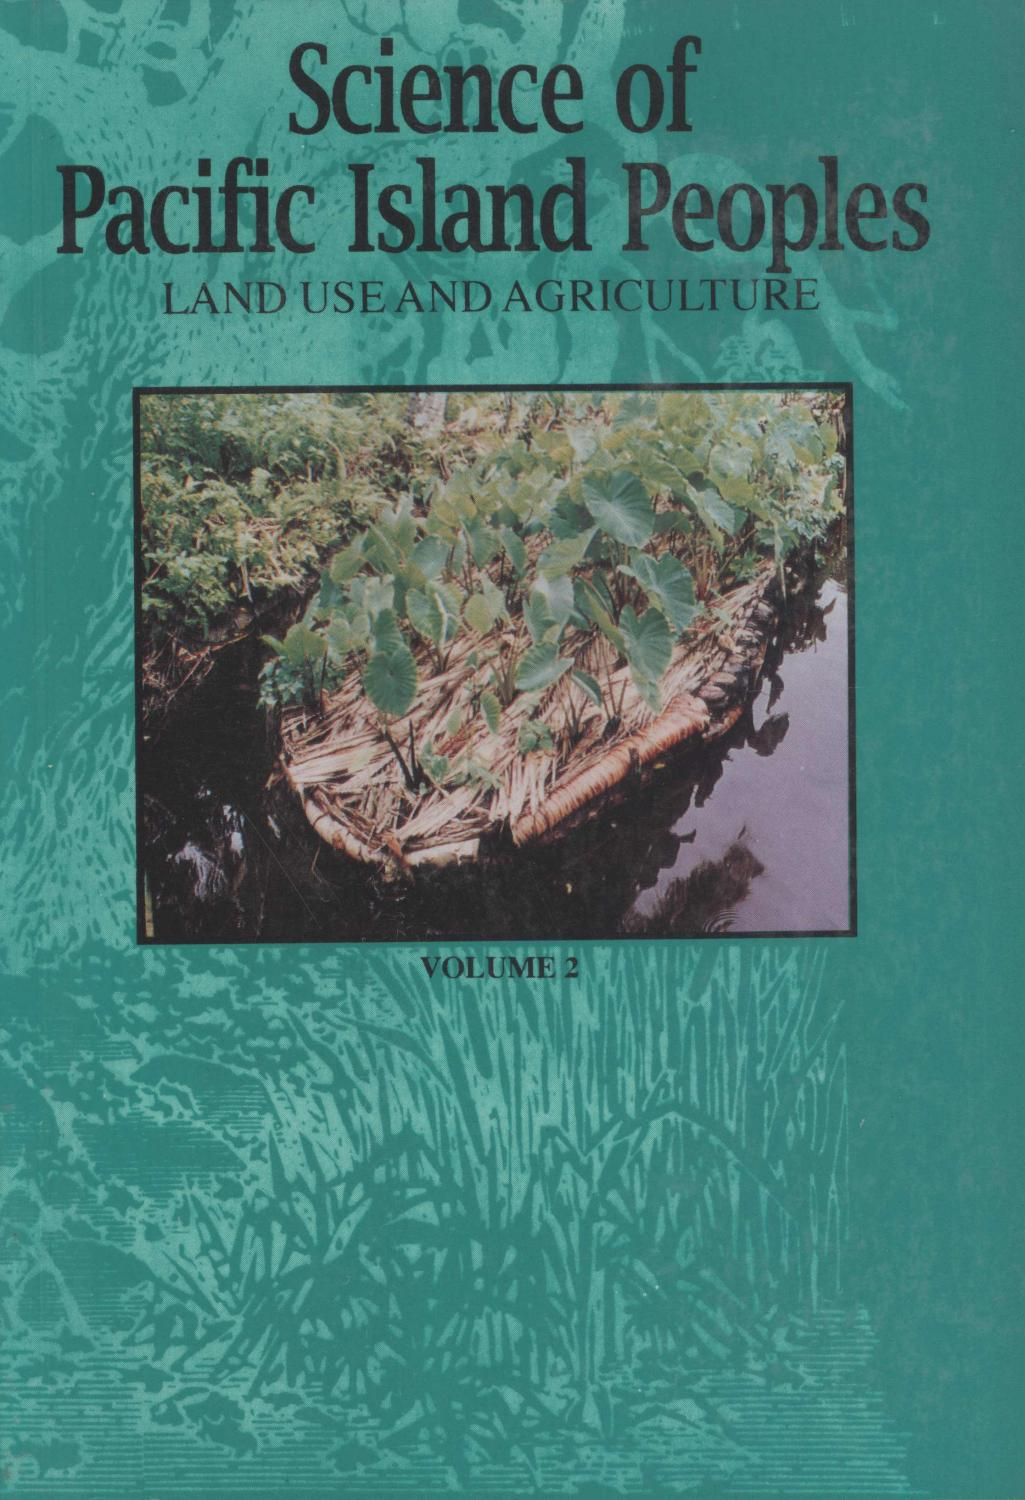 Science of Pacific Island People, Vol. 2: Land Use and Agriculture - John Morrison; Paul Geraghty; Linda Crowl (editors)